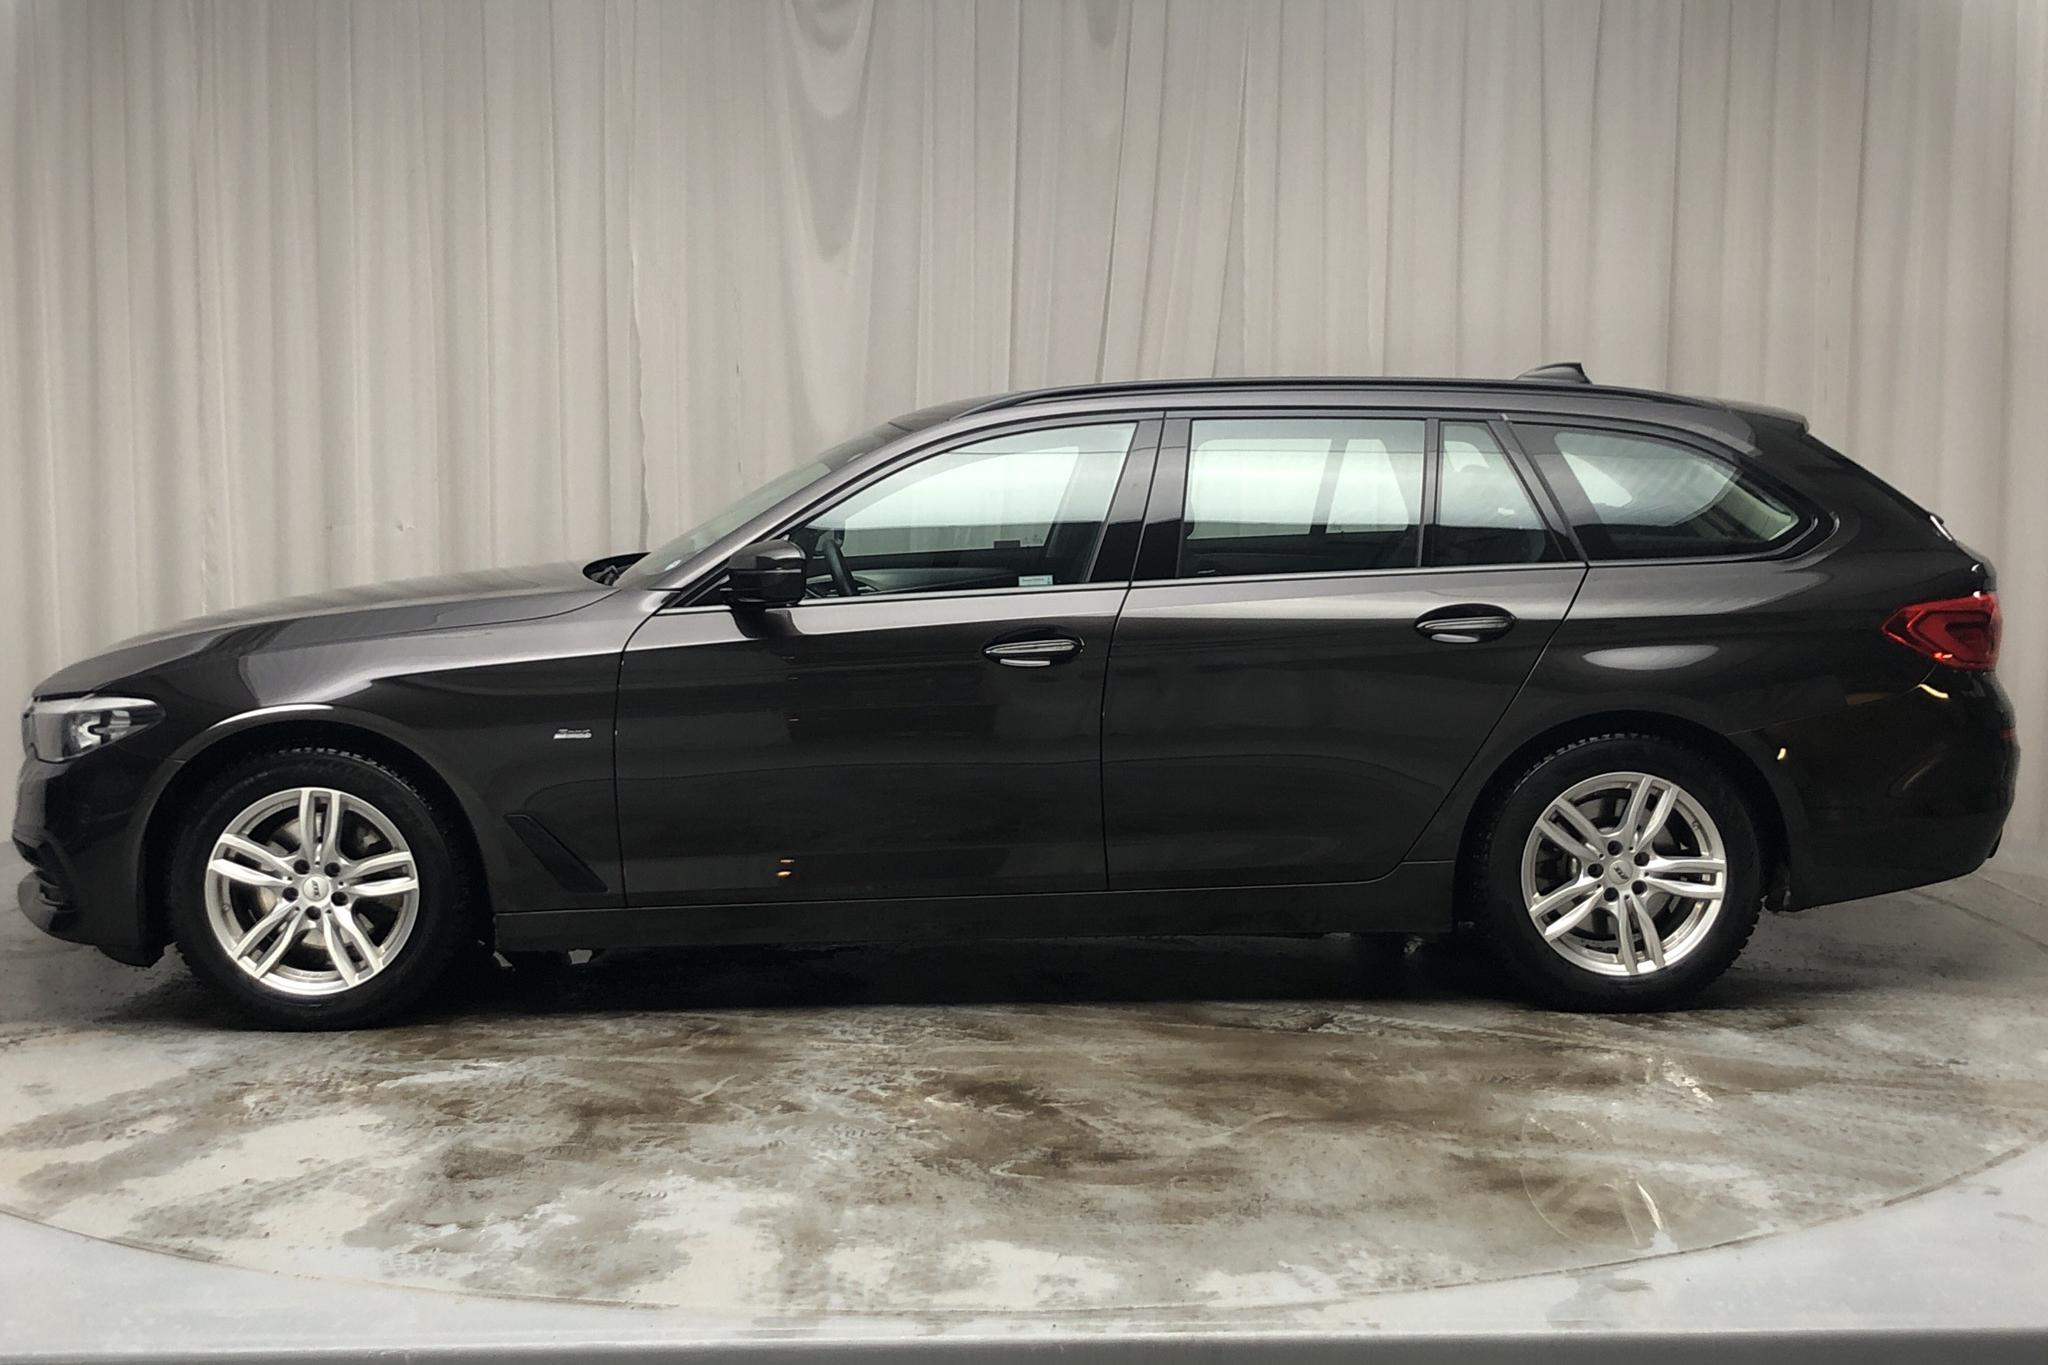 BMW 520i Touring, G31 (184hk) - 47 060 km - Automatic - brown - 2018